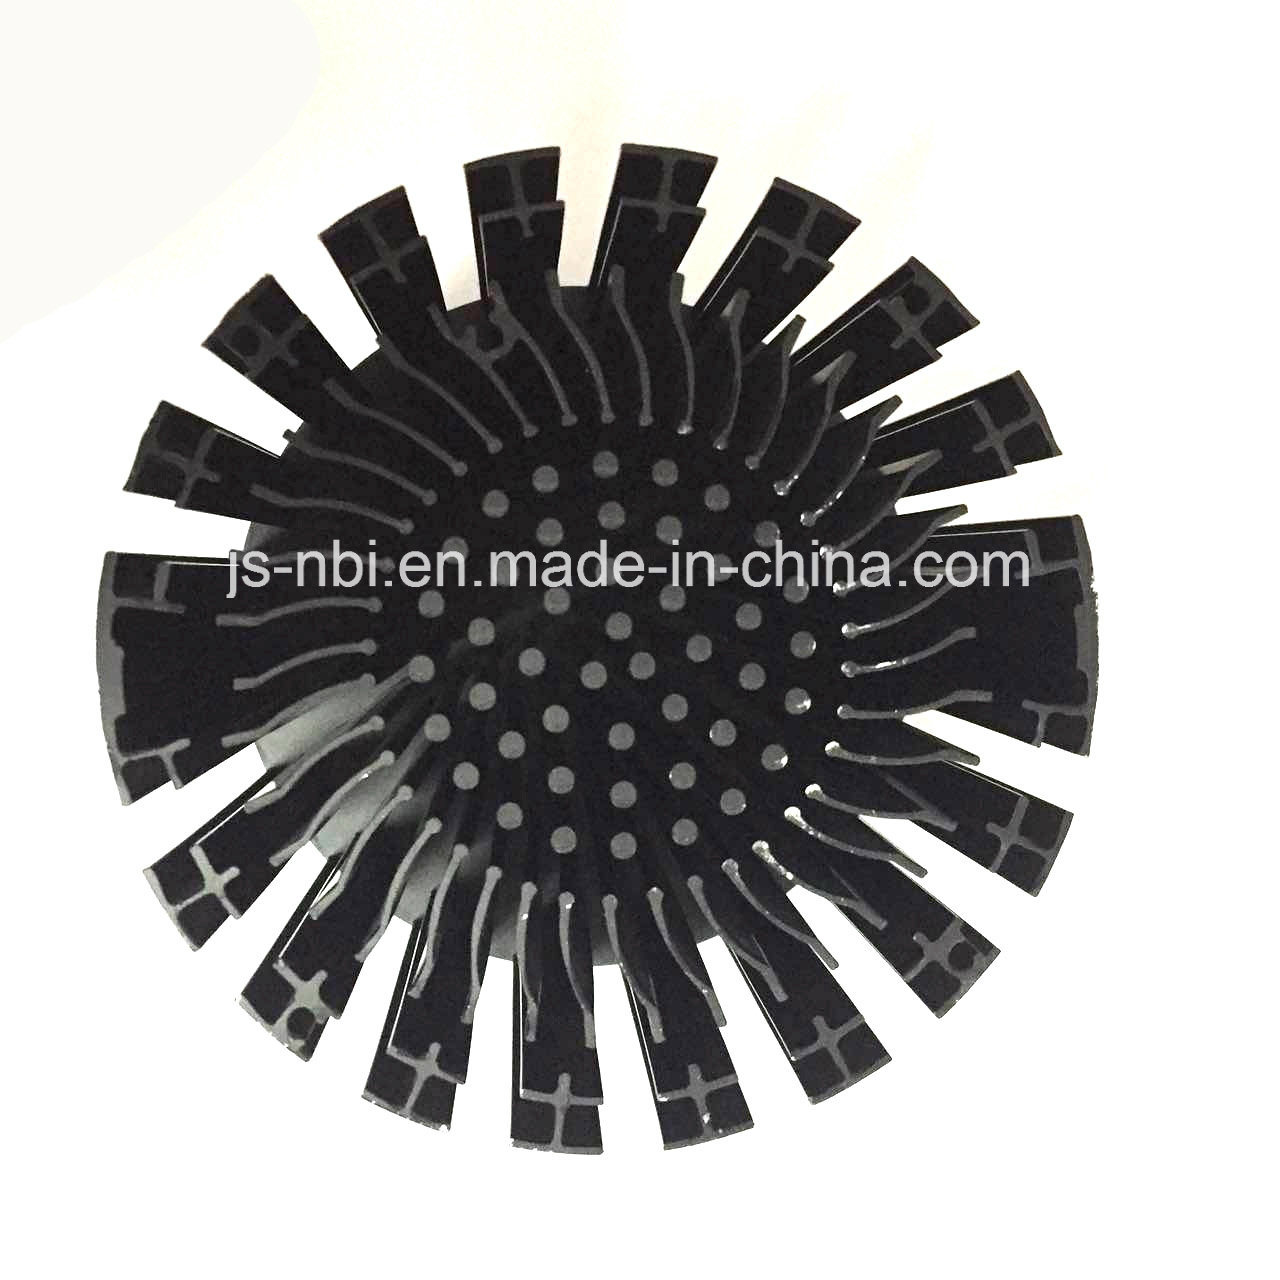 Chinese Factory Custom-Made 1070 Aluminum Cold Forging Heat Sink for LED Light